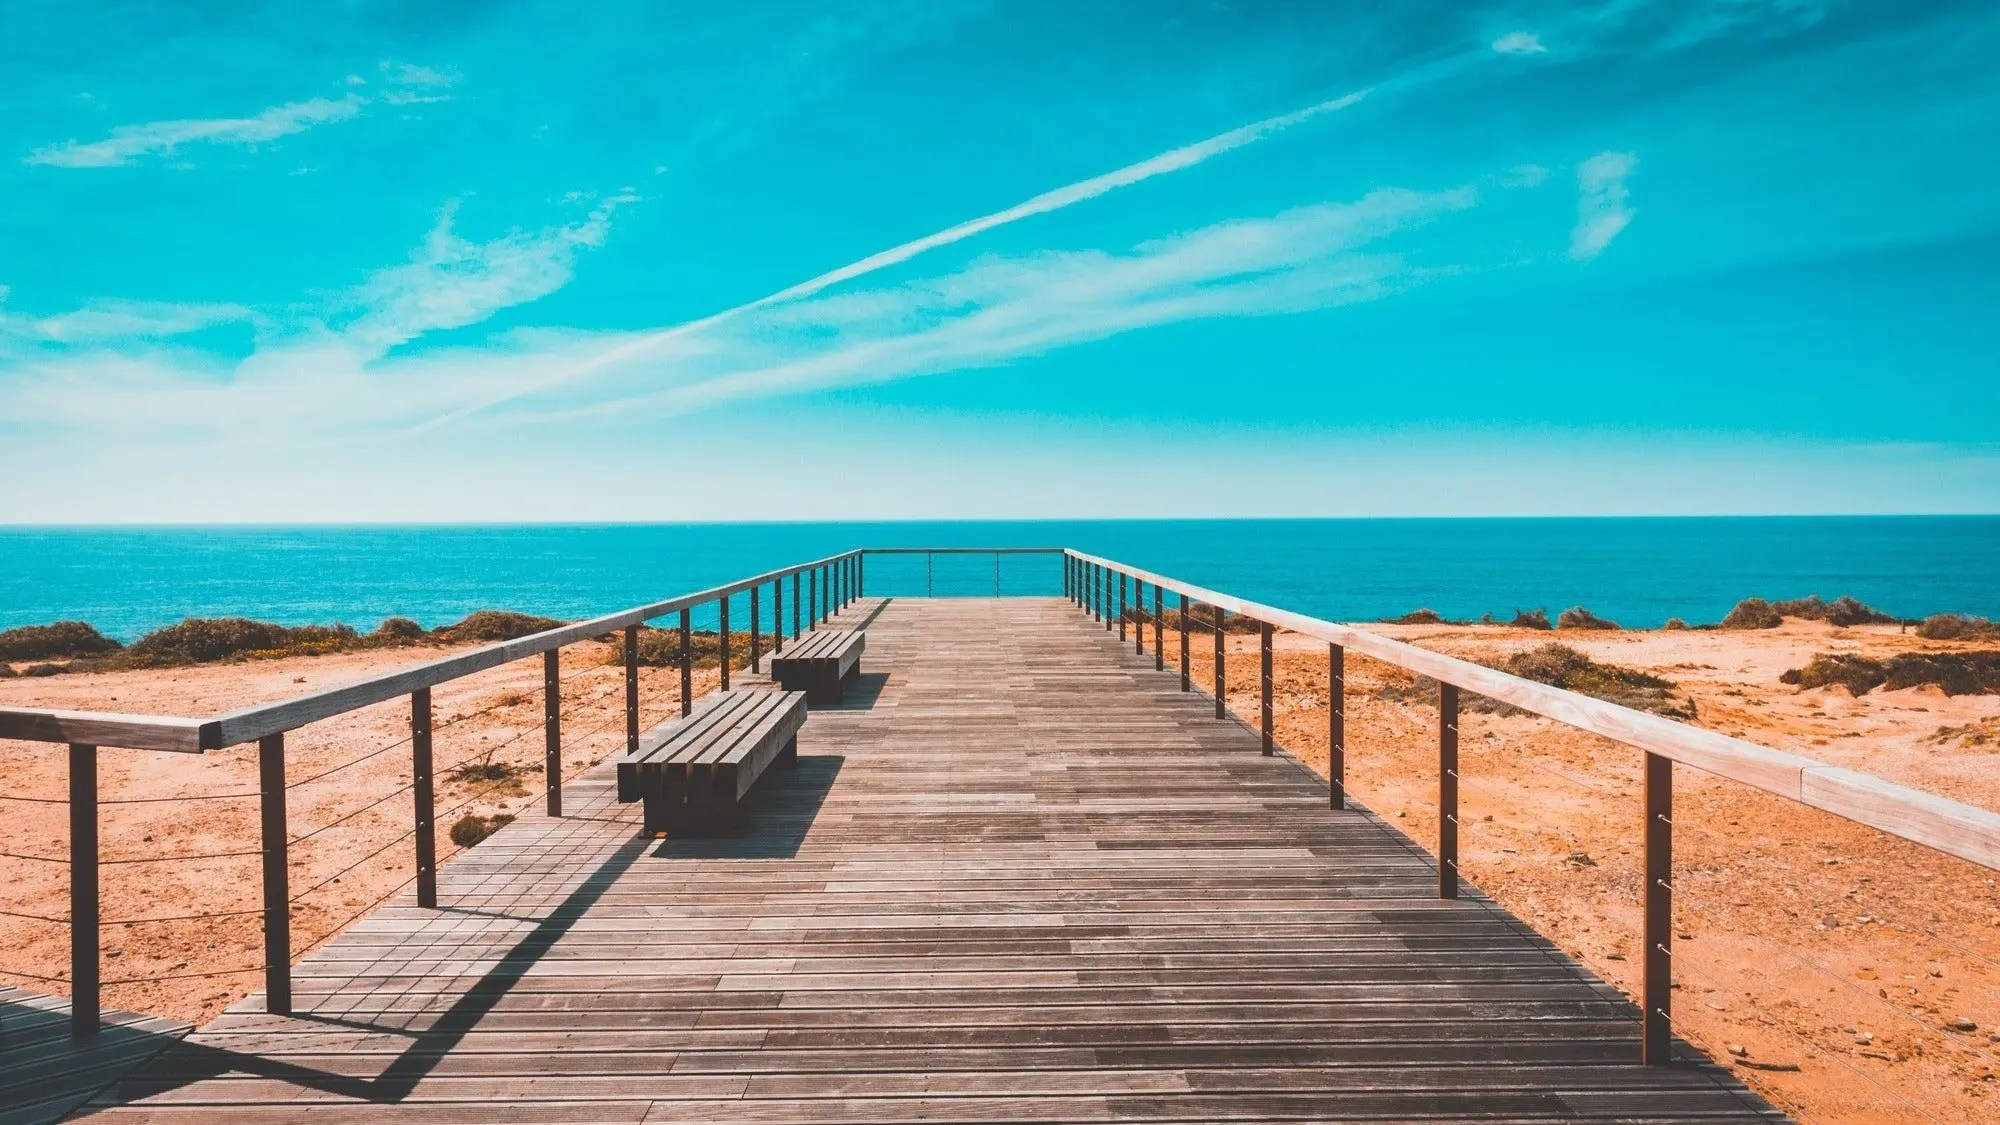 beach-bench-boardwalk-clouds-462024